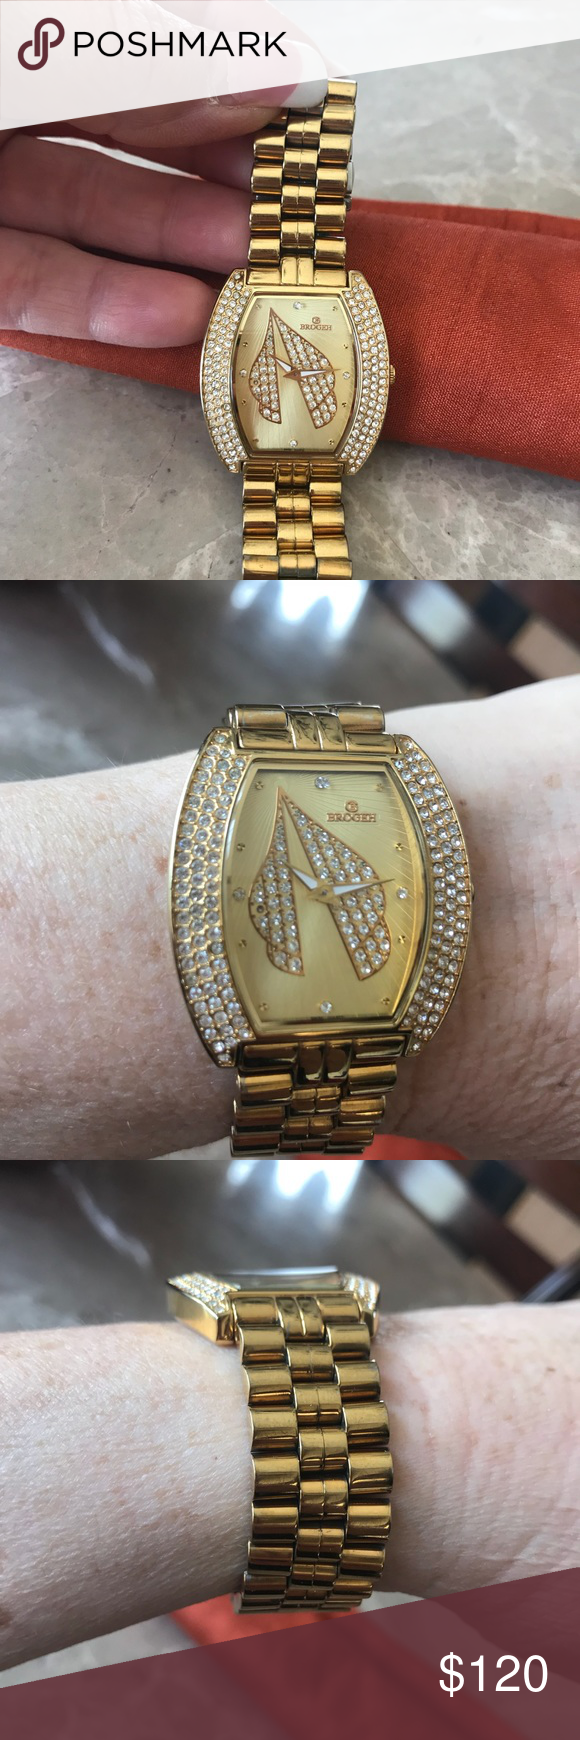 Brogeh Women S Watch With Sapphire Coating Crystal Brogeh Women S Watch Purchased In Dubai Sapphire Coating C Accessories Things To Sell Accessories Watches